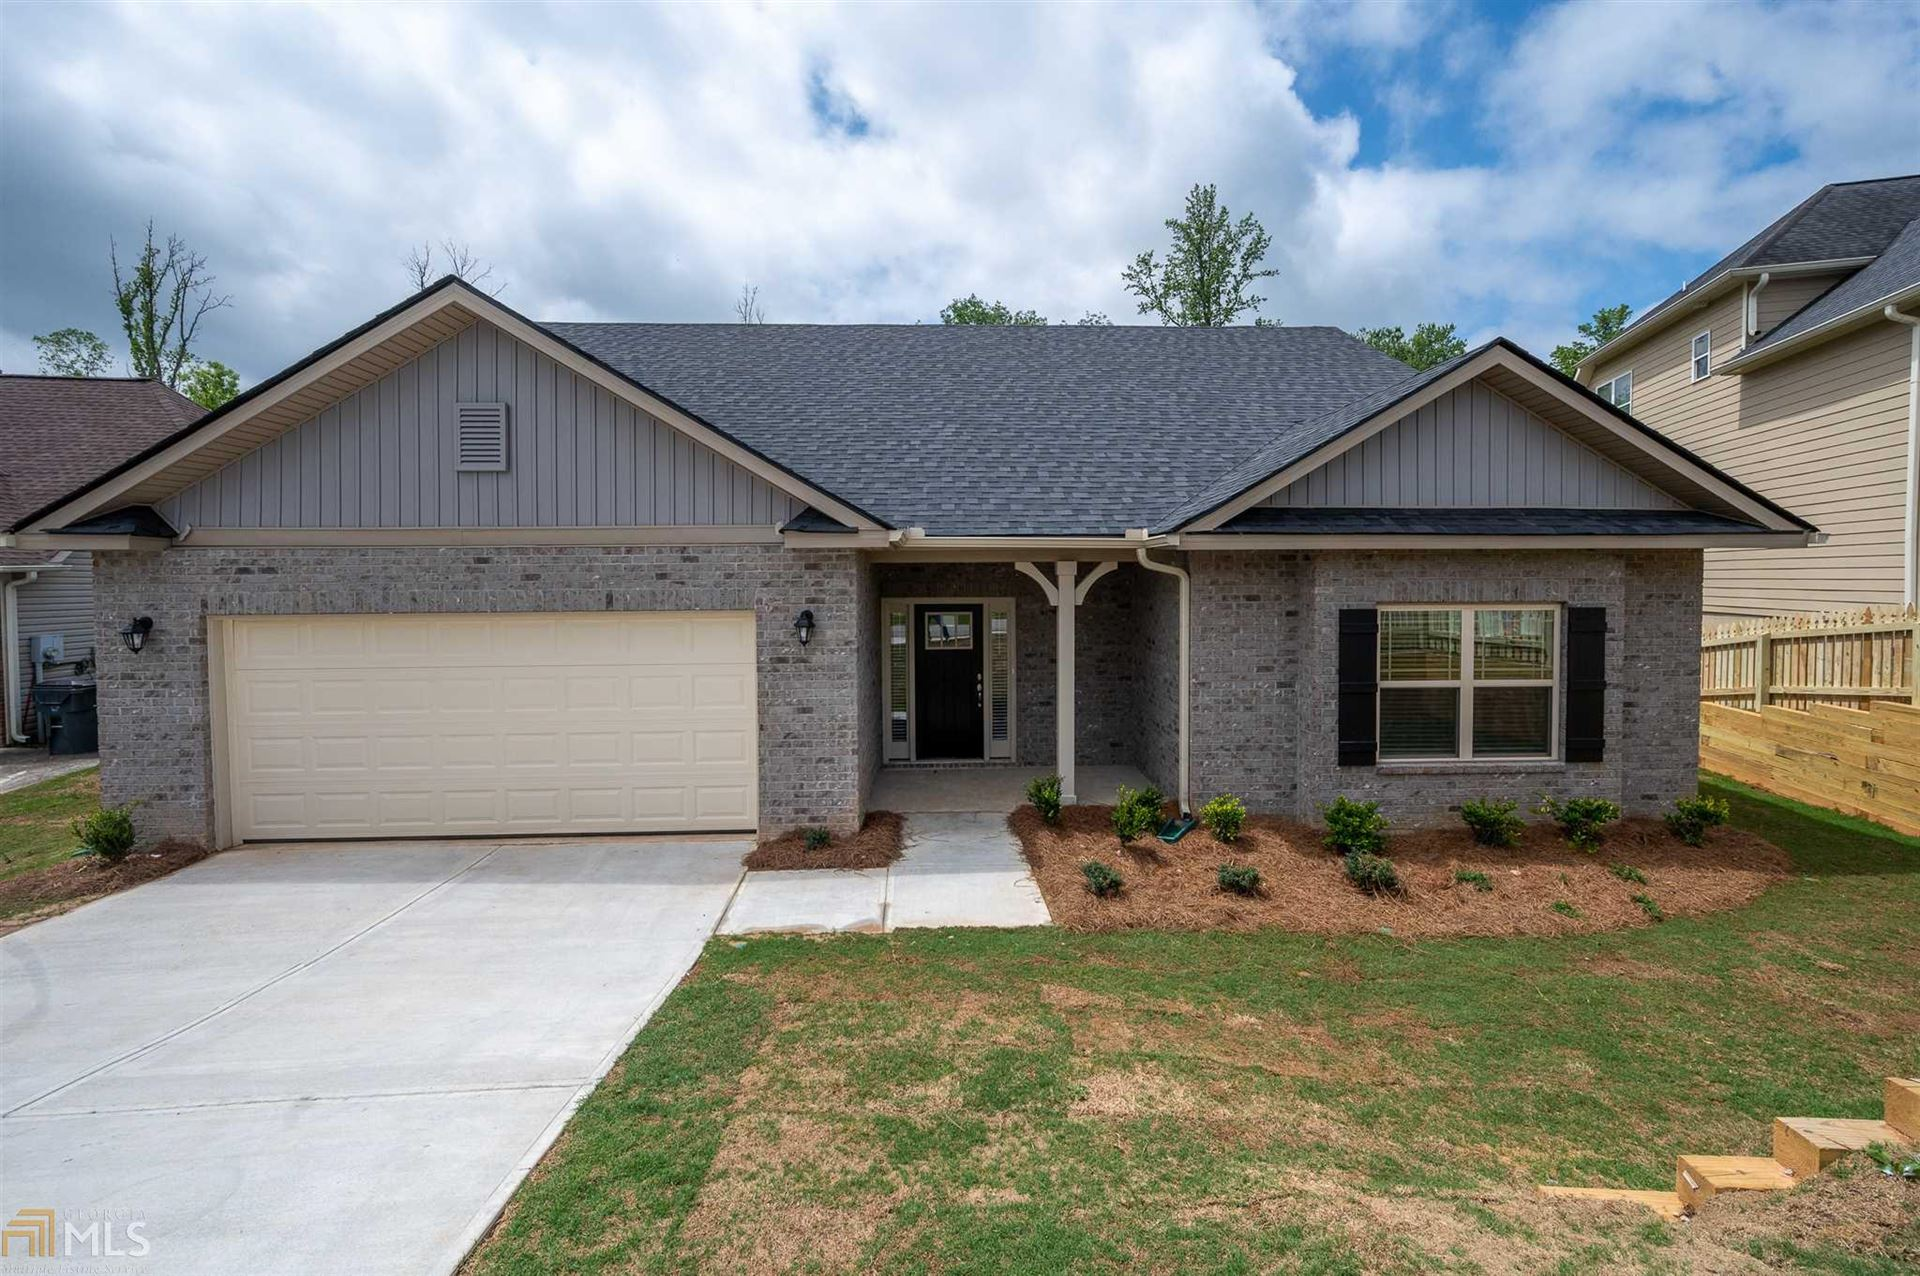 256 White Flower Cir, Villa Rica, GA 30180 - MLS#: 8743311